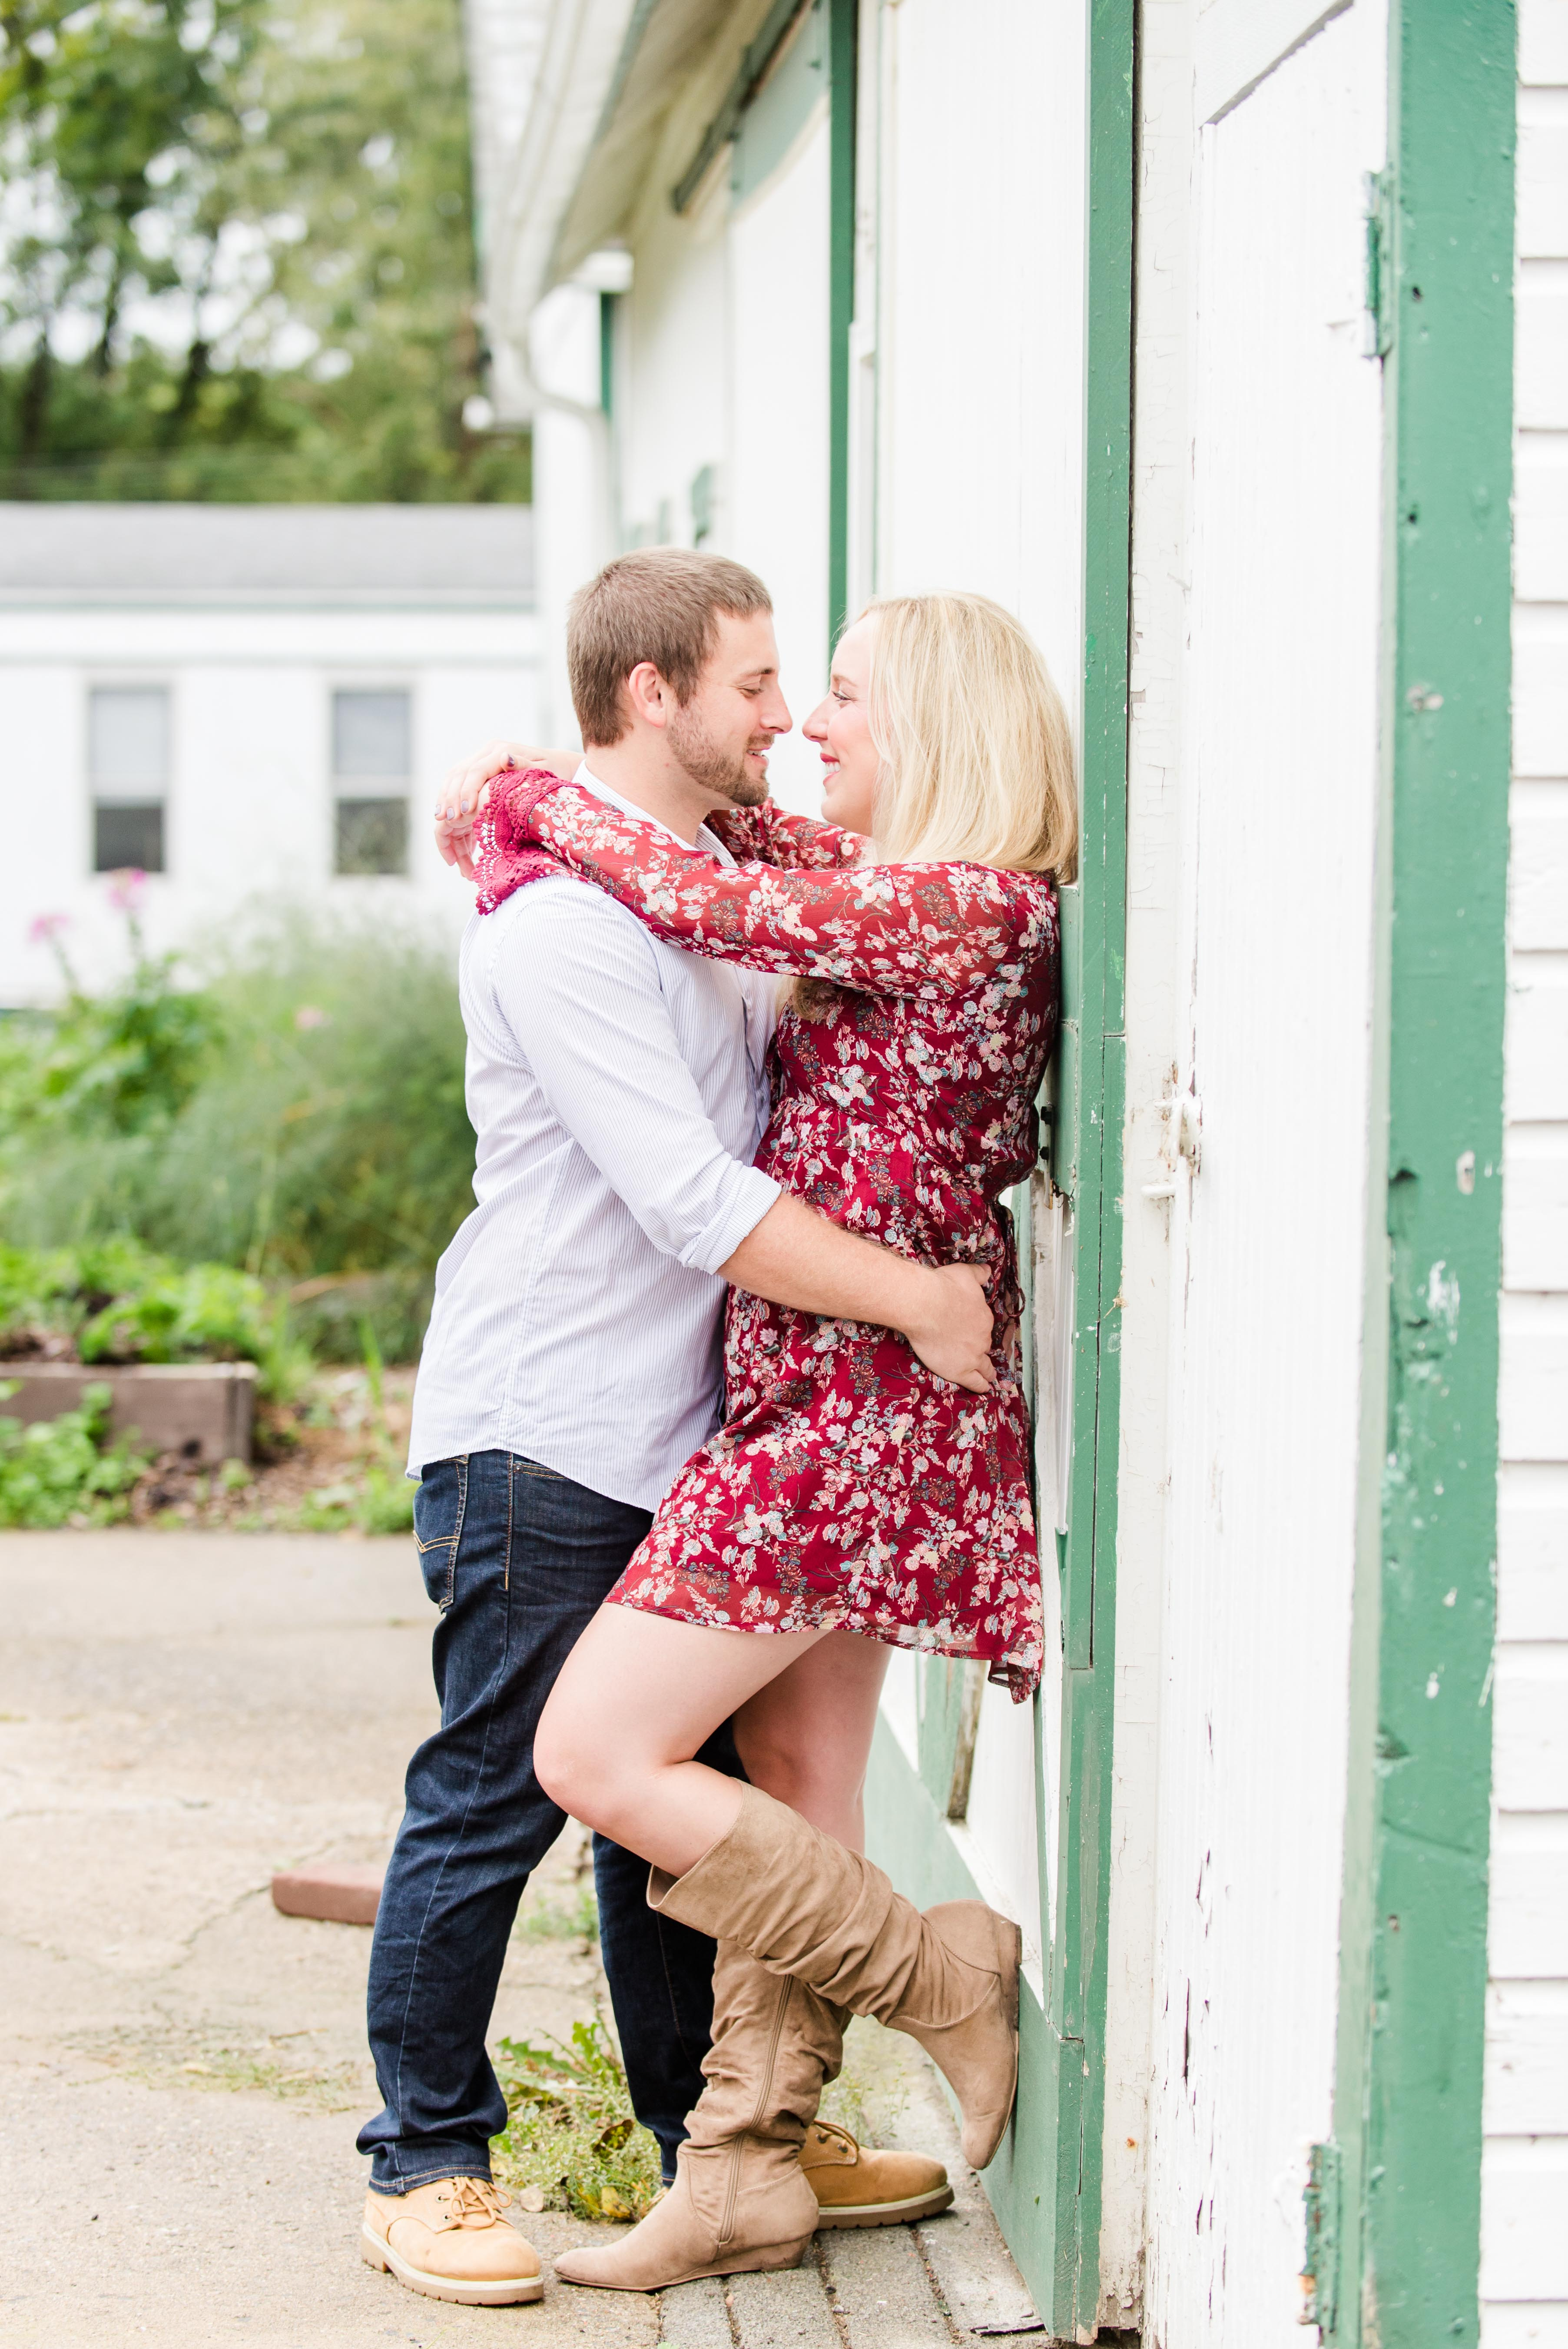 Abbey and Carl Engagement Photos Rodale Institute Kutztown Pennsylvania Andrea Krout Photography-36